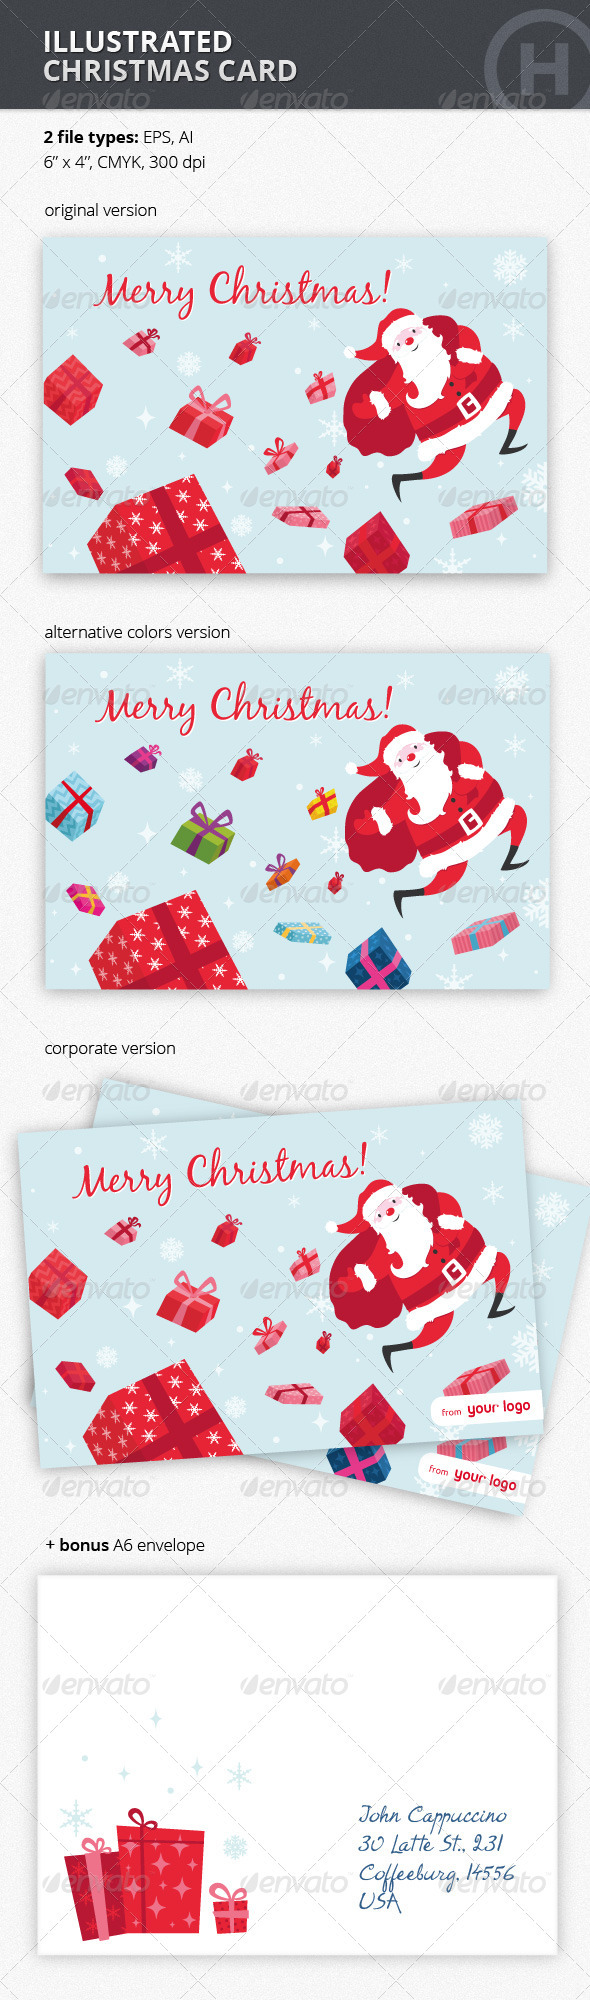 Illustrated Christmas Card - Holiday Greeting Cards